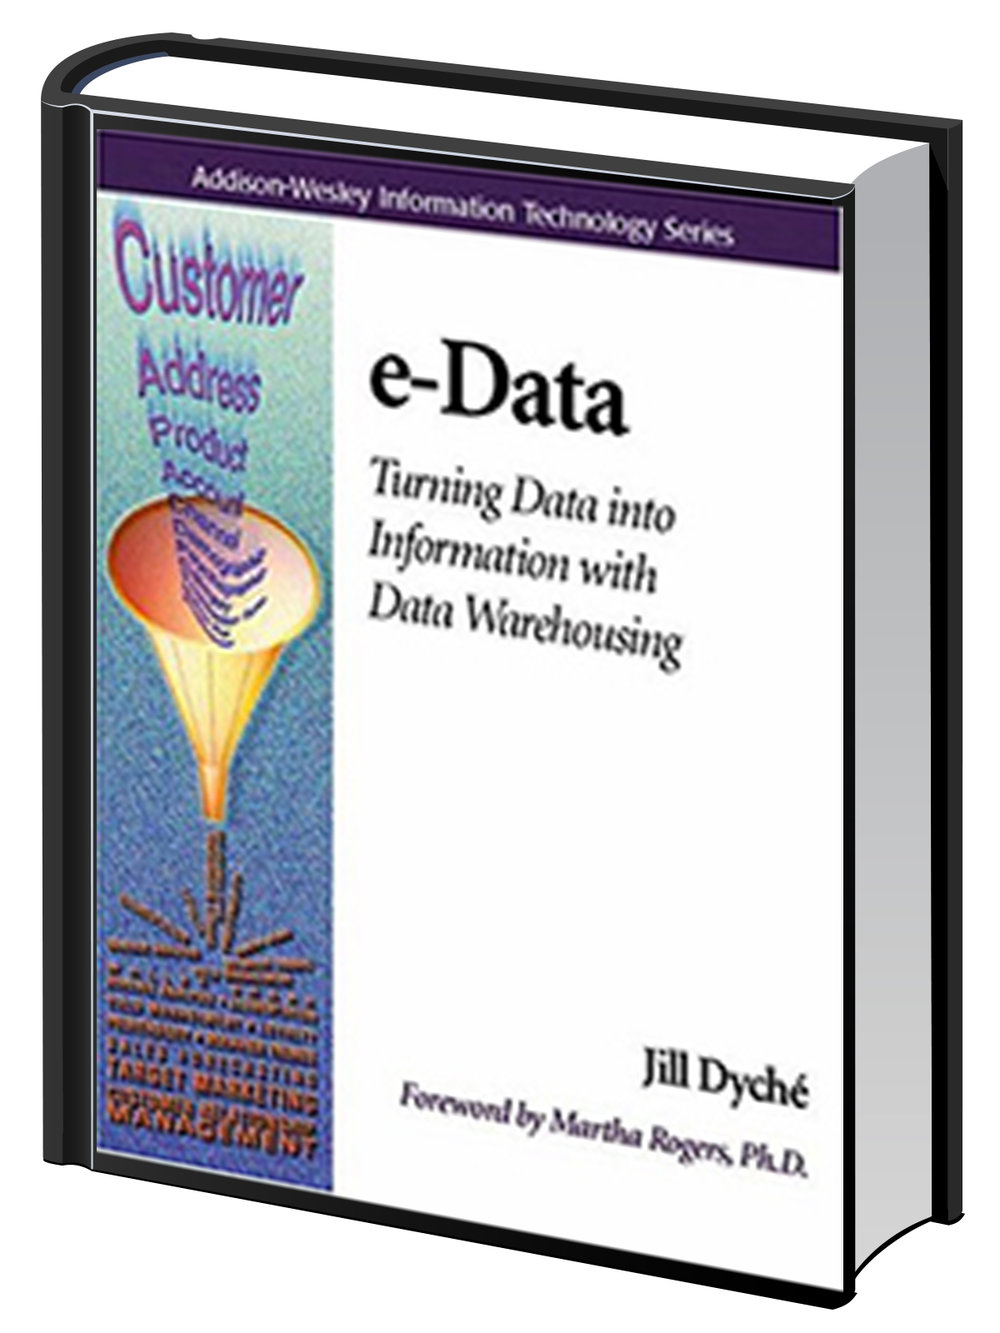 e-Data book cover